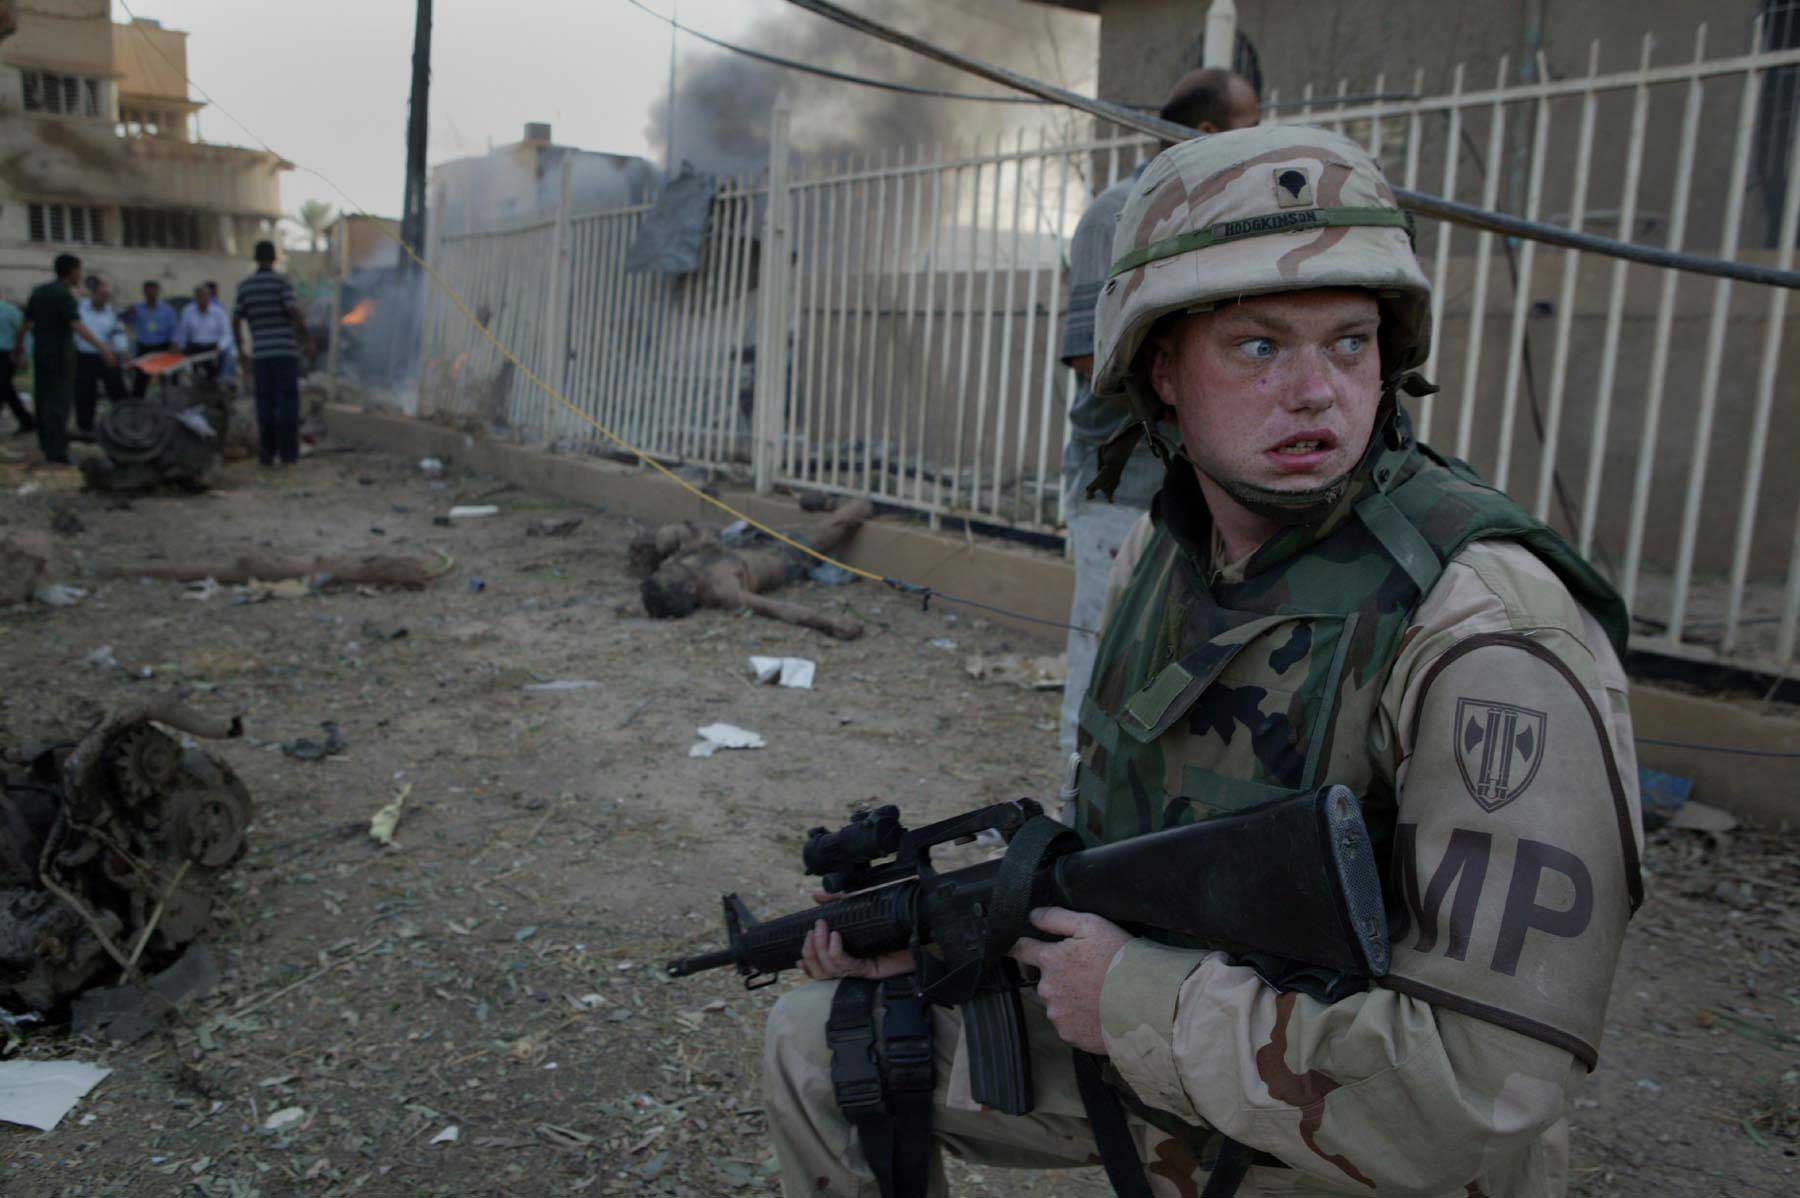 """<b>Mike Kamber, Oct. 27, 2003                                   </b>                                   This was the morning everything changed for me. U.S. combat troops were due to return home in a month and I'd been sent to Iraq to cover the """"return to normality,"""" as an editor put it. Joao Silva and I were standing around when an enormous explosion shook our house. The bombing turned out to be a mile away. We were first journalists on the scene and found the Red Cross destroyed by a truck bomb; dozens were killed. As we photographed, other explosions went off around the city. I thought this soldier's face said it all, the shock that there was to be no """"return to normality."""""""